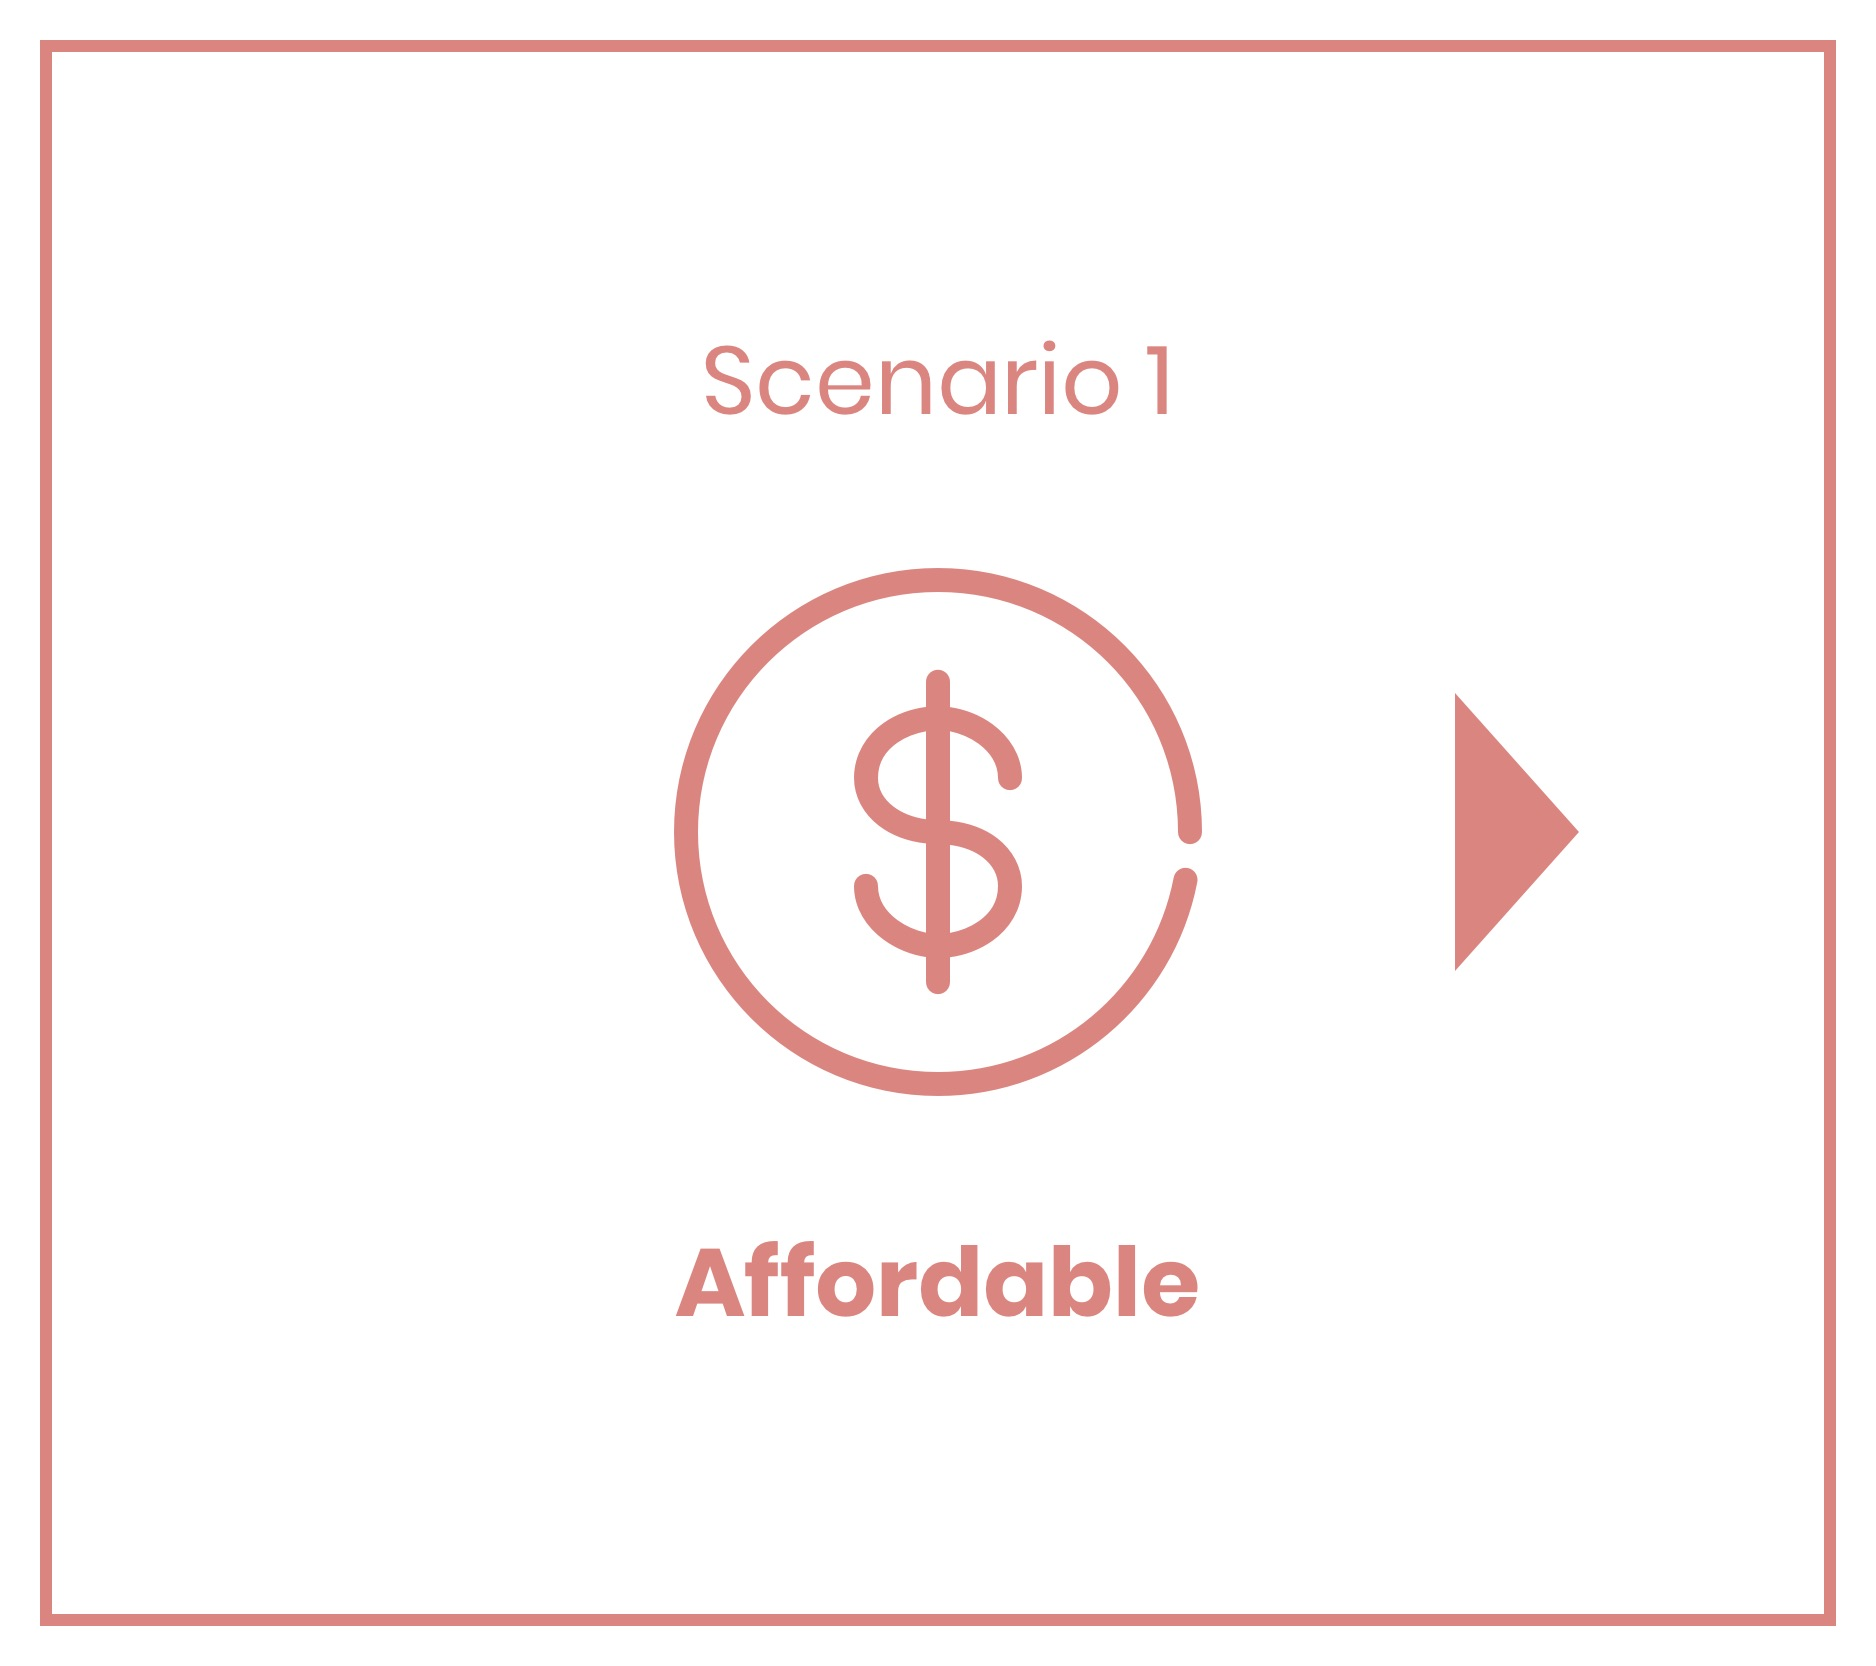 Scenario 1 is the problem of affordability. A dollar icon represents the theme of the scenario.